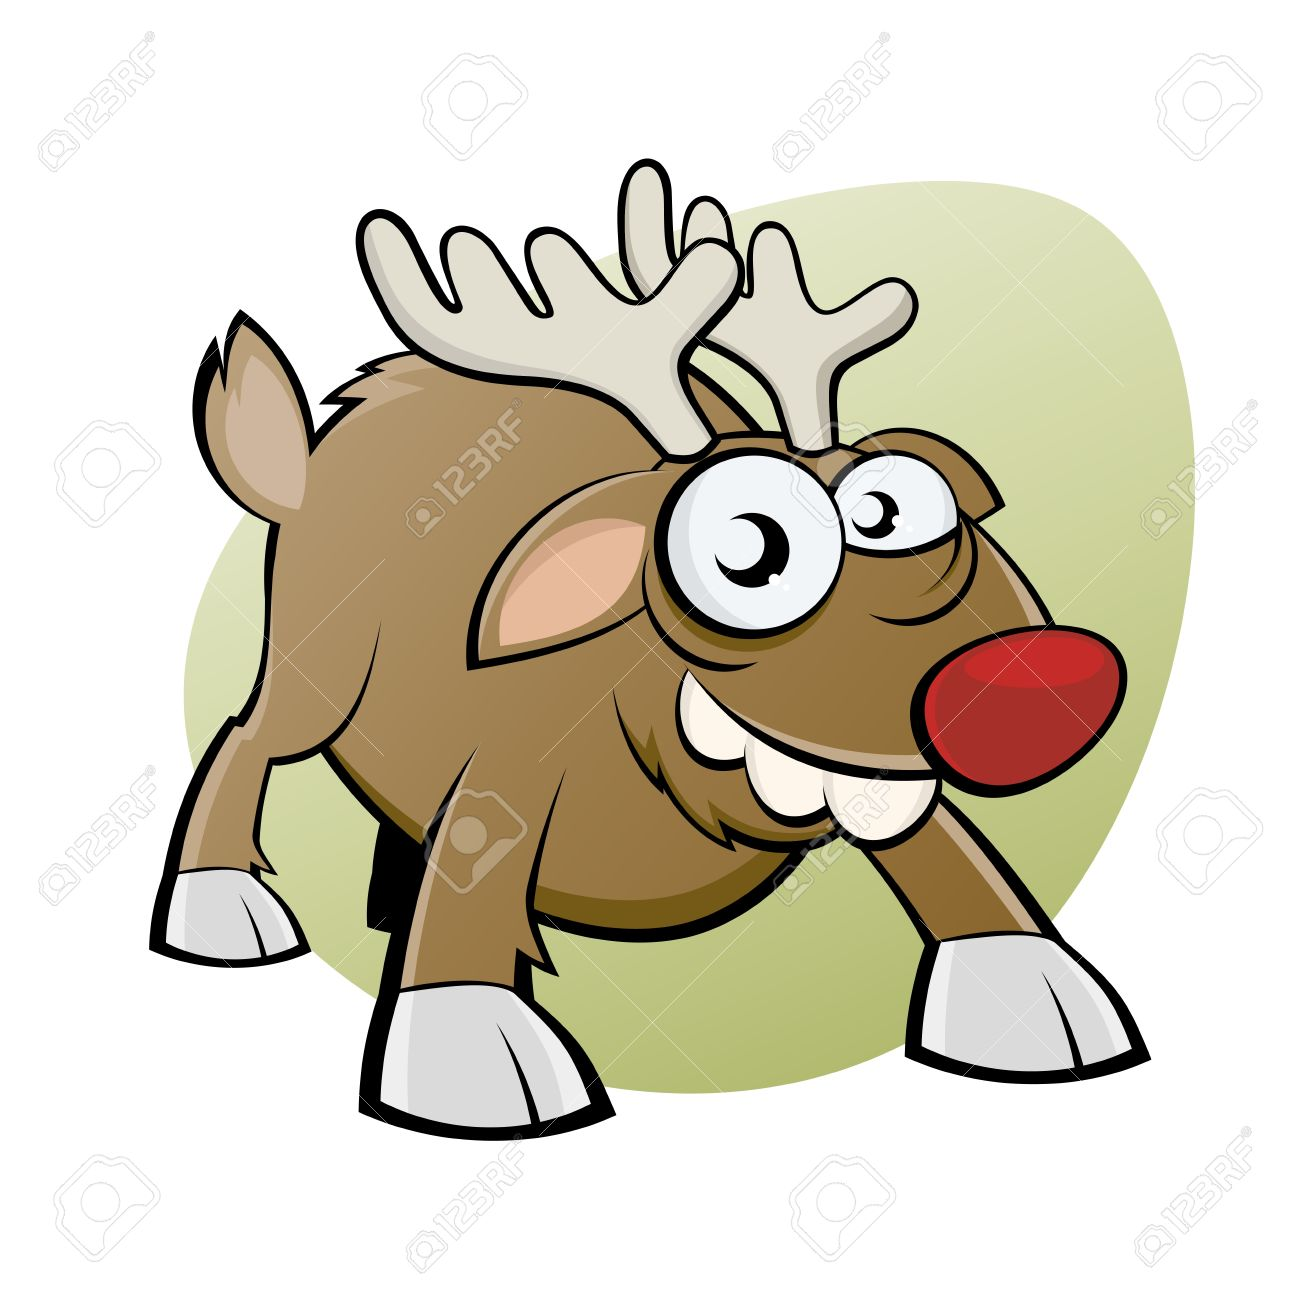 Funny Christmas Reindeer Royalty Free Cliparts, Vectors, And Stock.